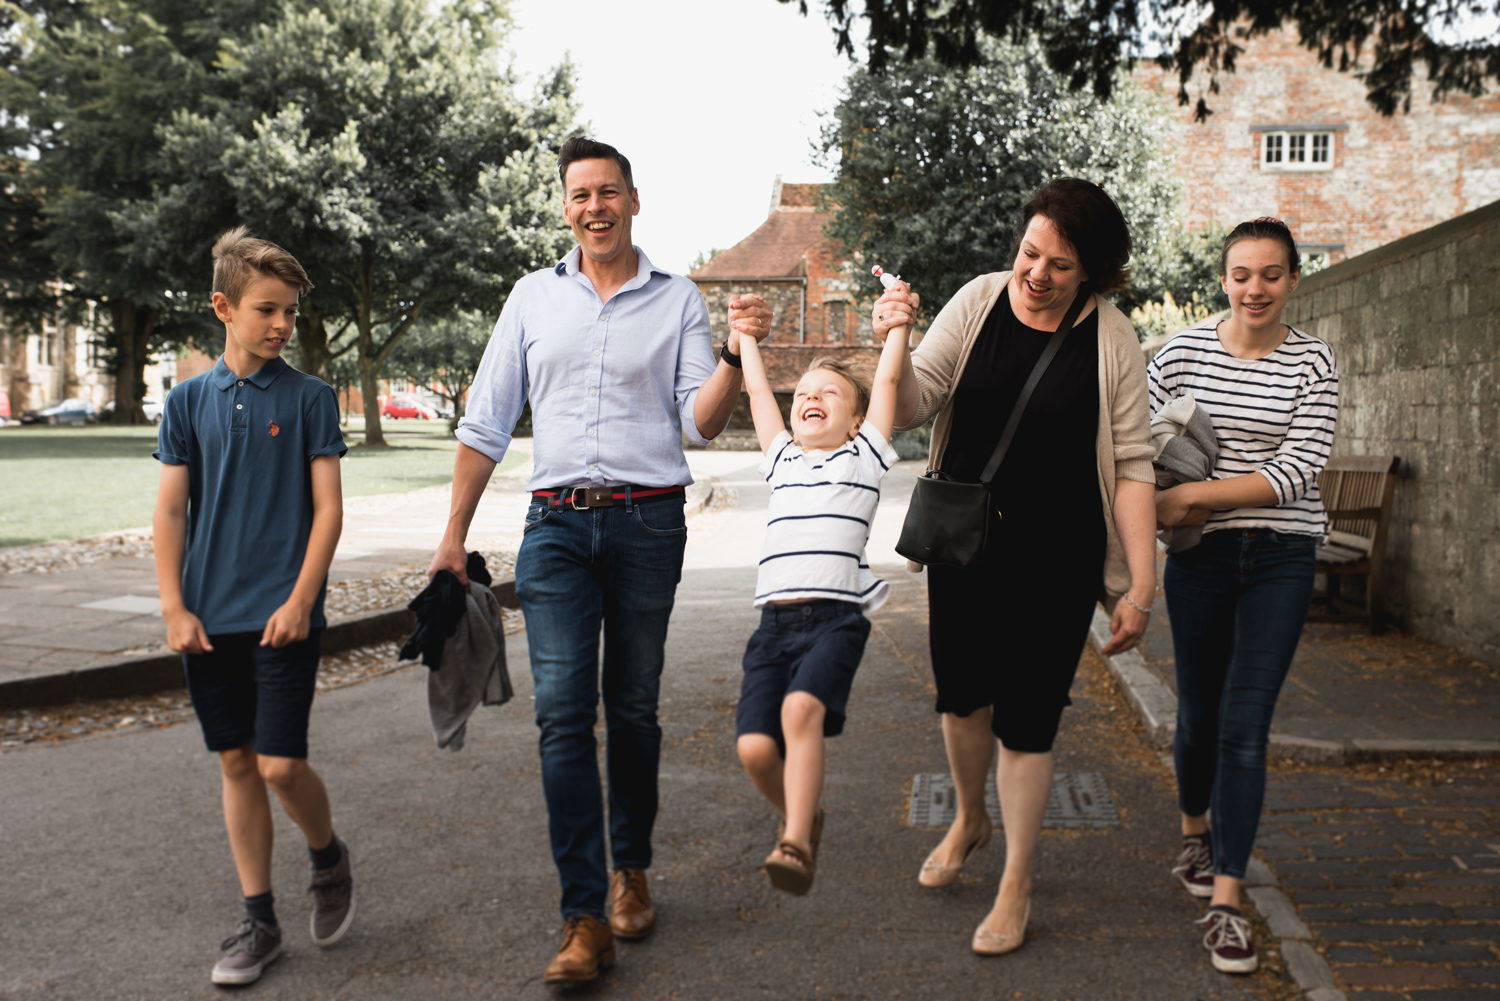 Winchester Cathedral Dome Alley Family Portrait by chidlren's photographer Evie Winter